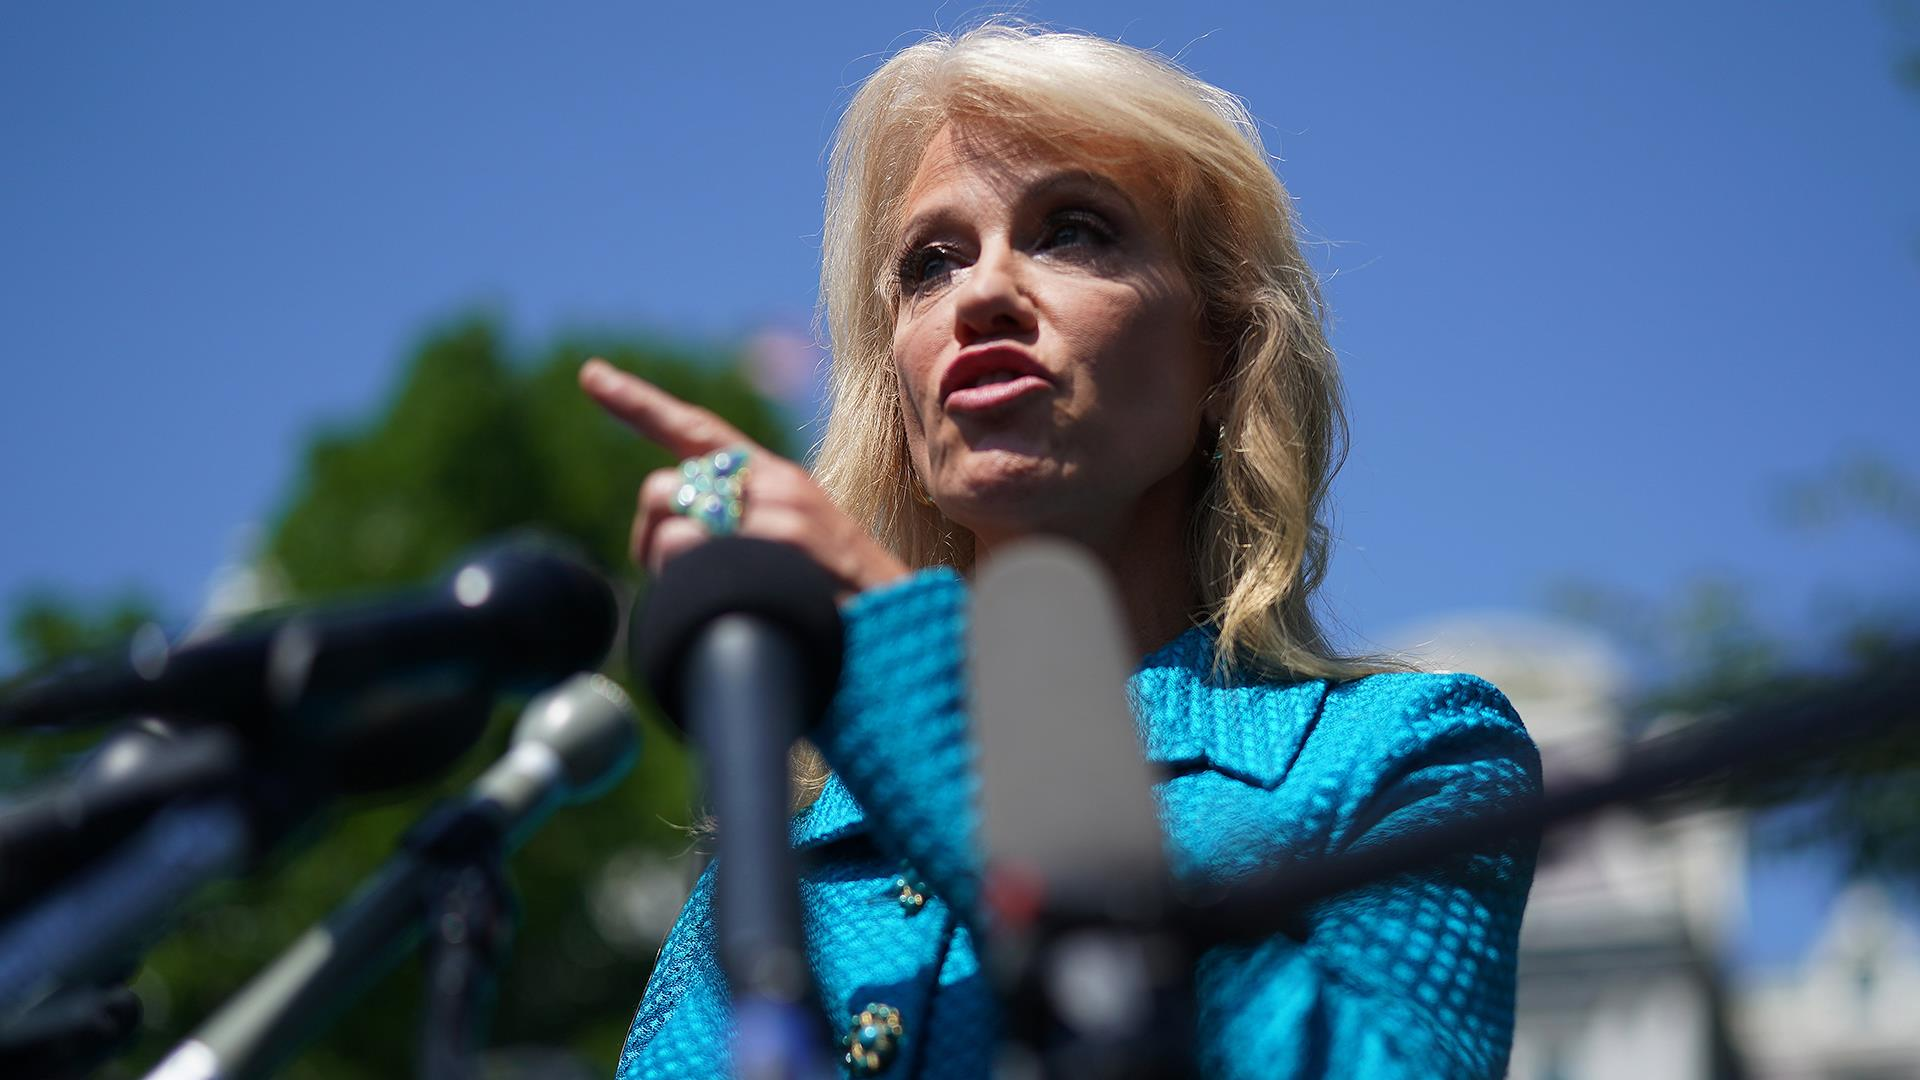 Defending Trump, White House adviser Kellyanne Conway asks a reporter: 'What's your ethnicity?'